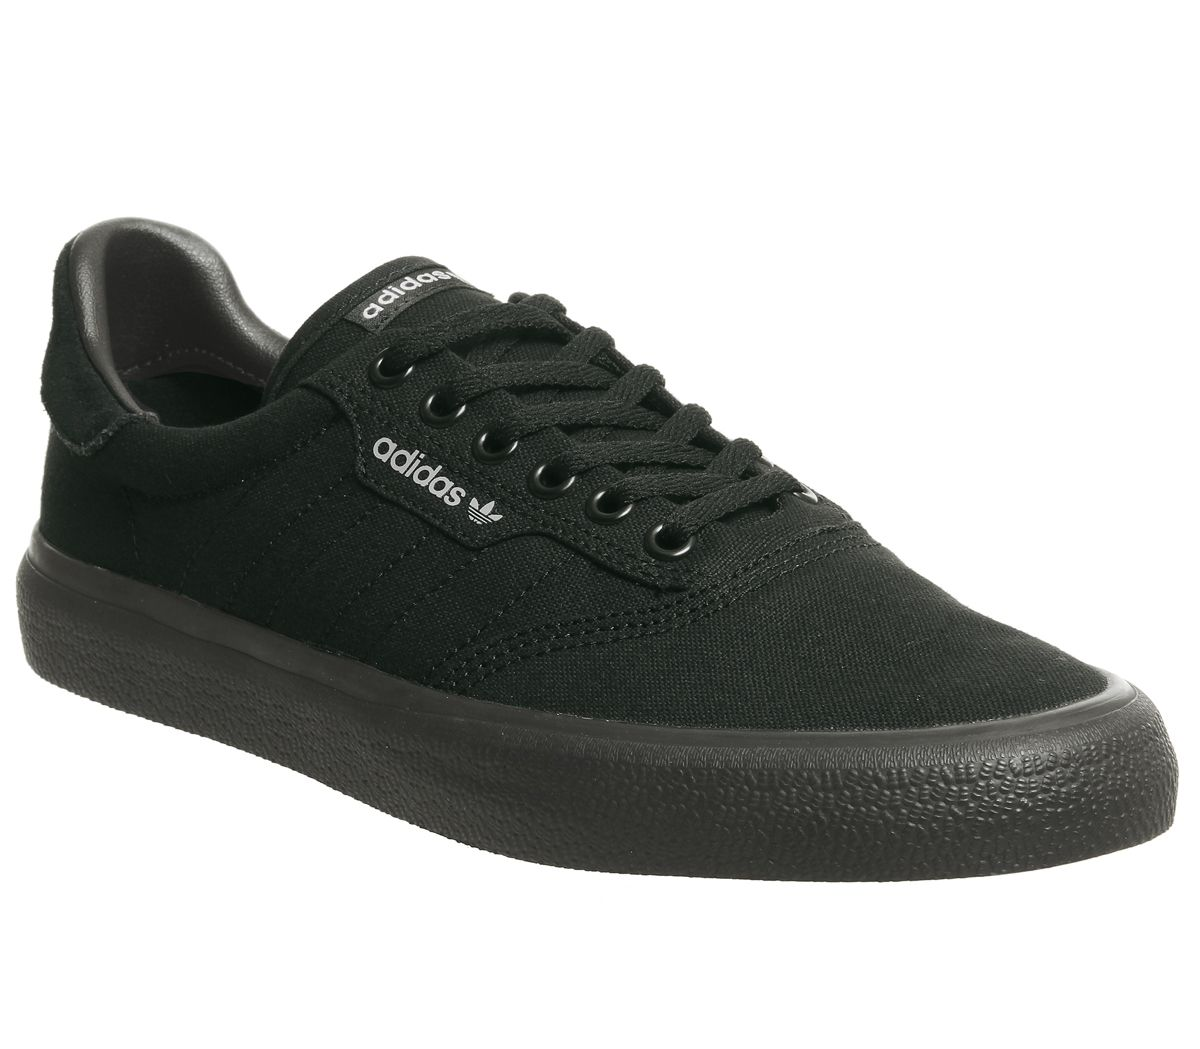 new arrival 6294d 9b1e1 adidas 3mc Trainers Core Black Core Black Grey - His trainers